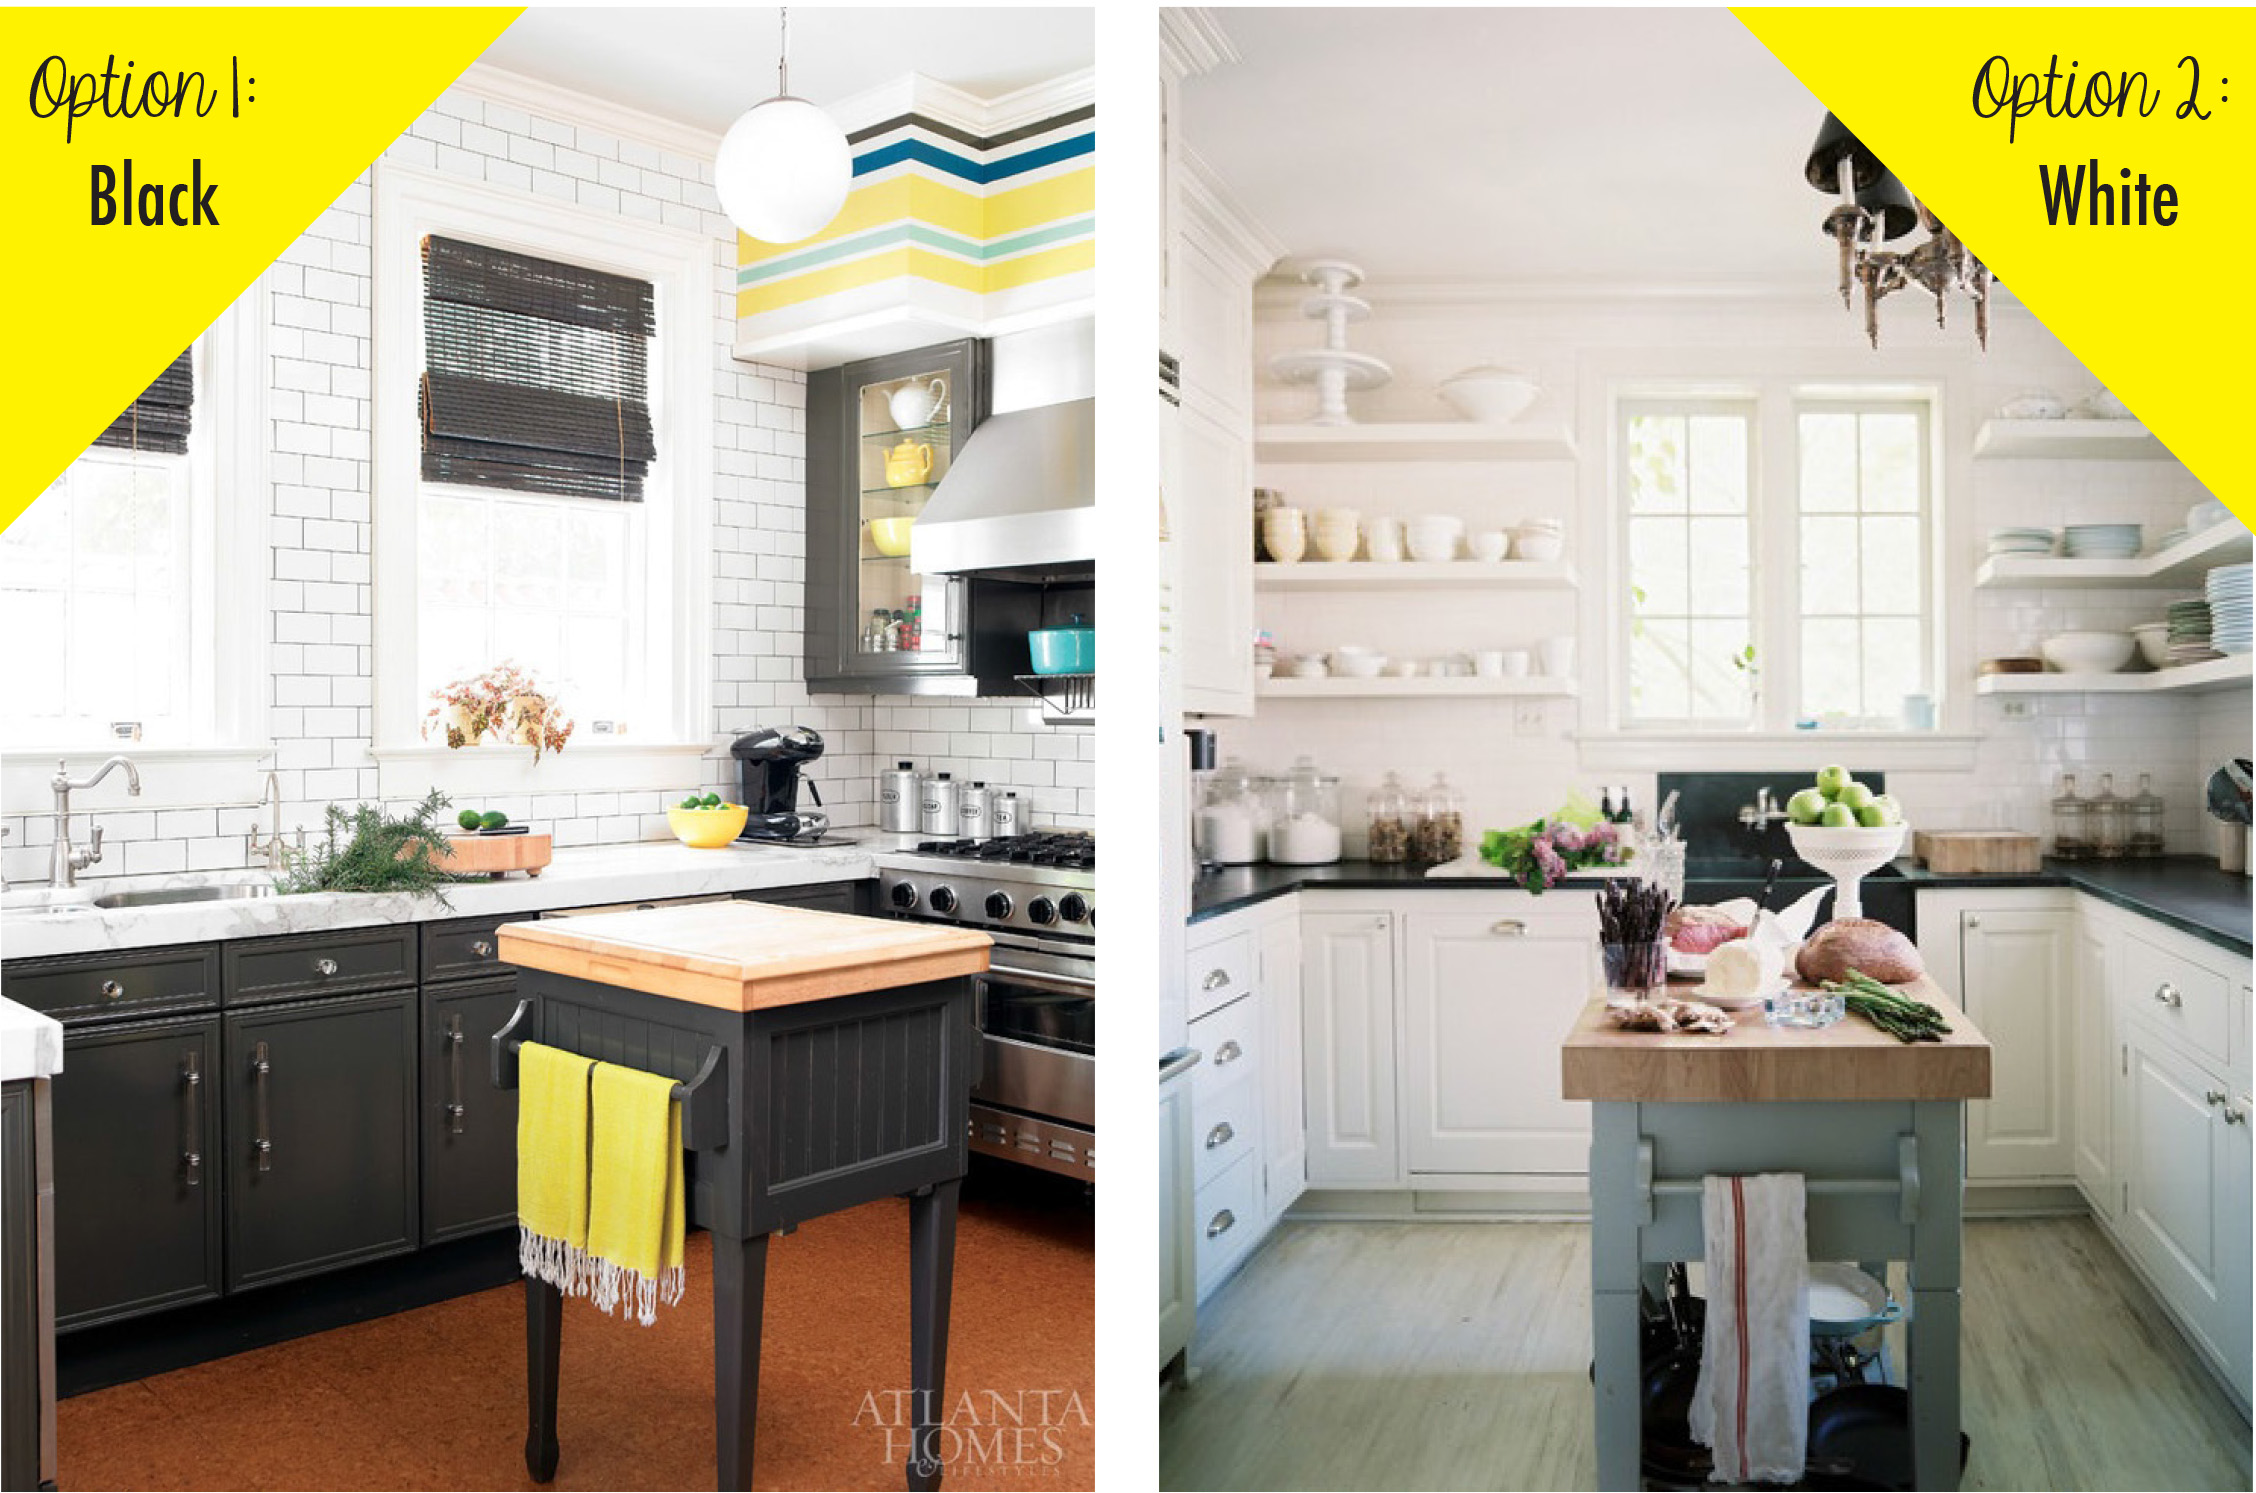 Black Bottom And White Top Kitchen Cabinets The Options Black Or White  Dream Green Diy